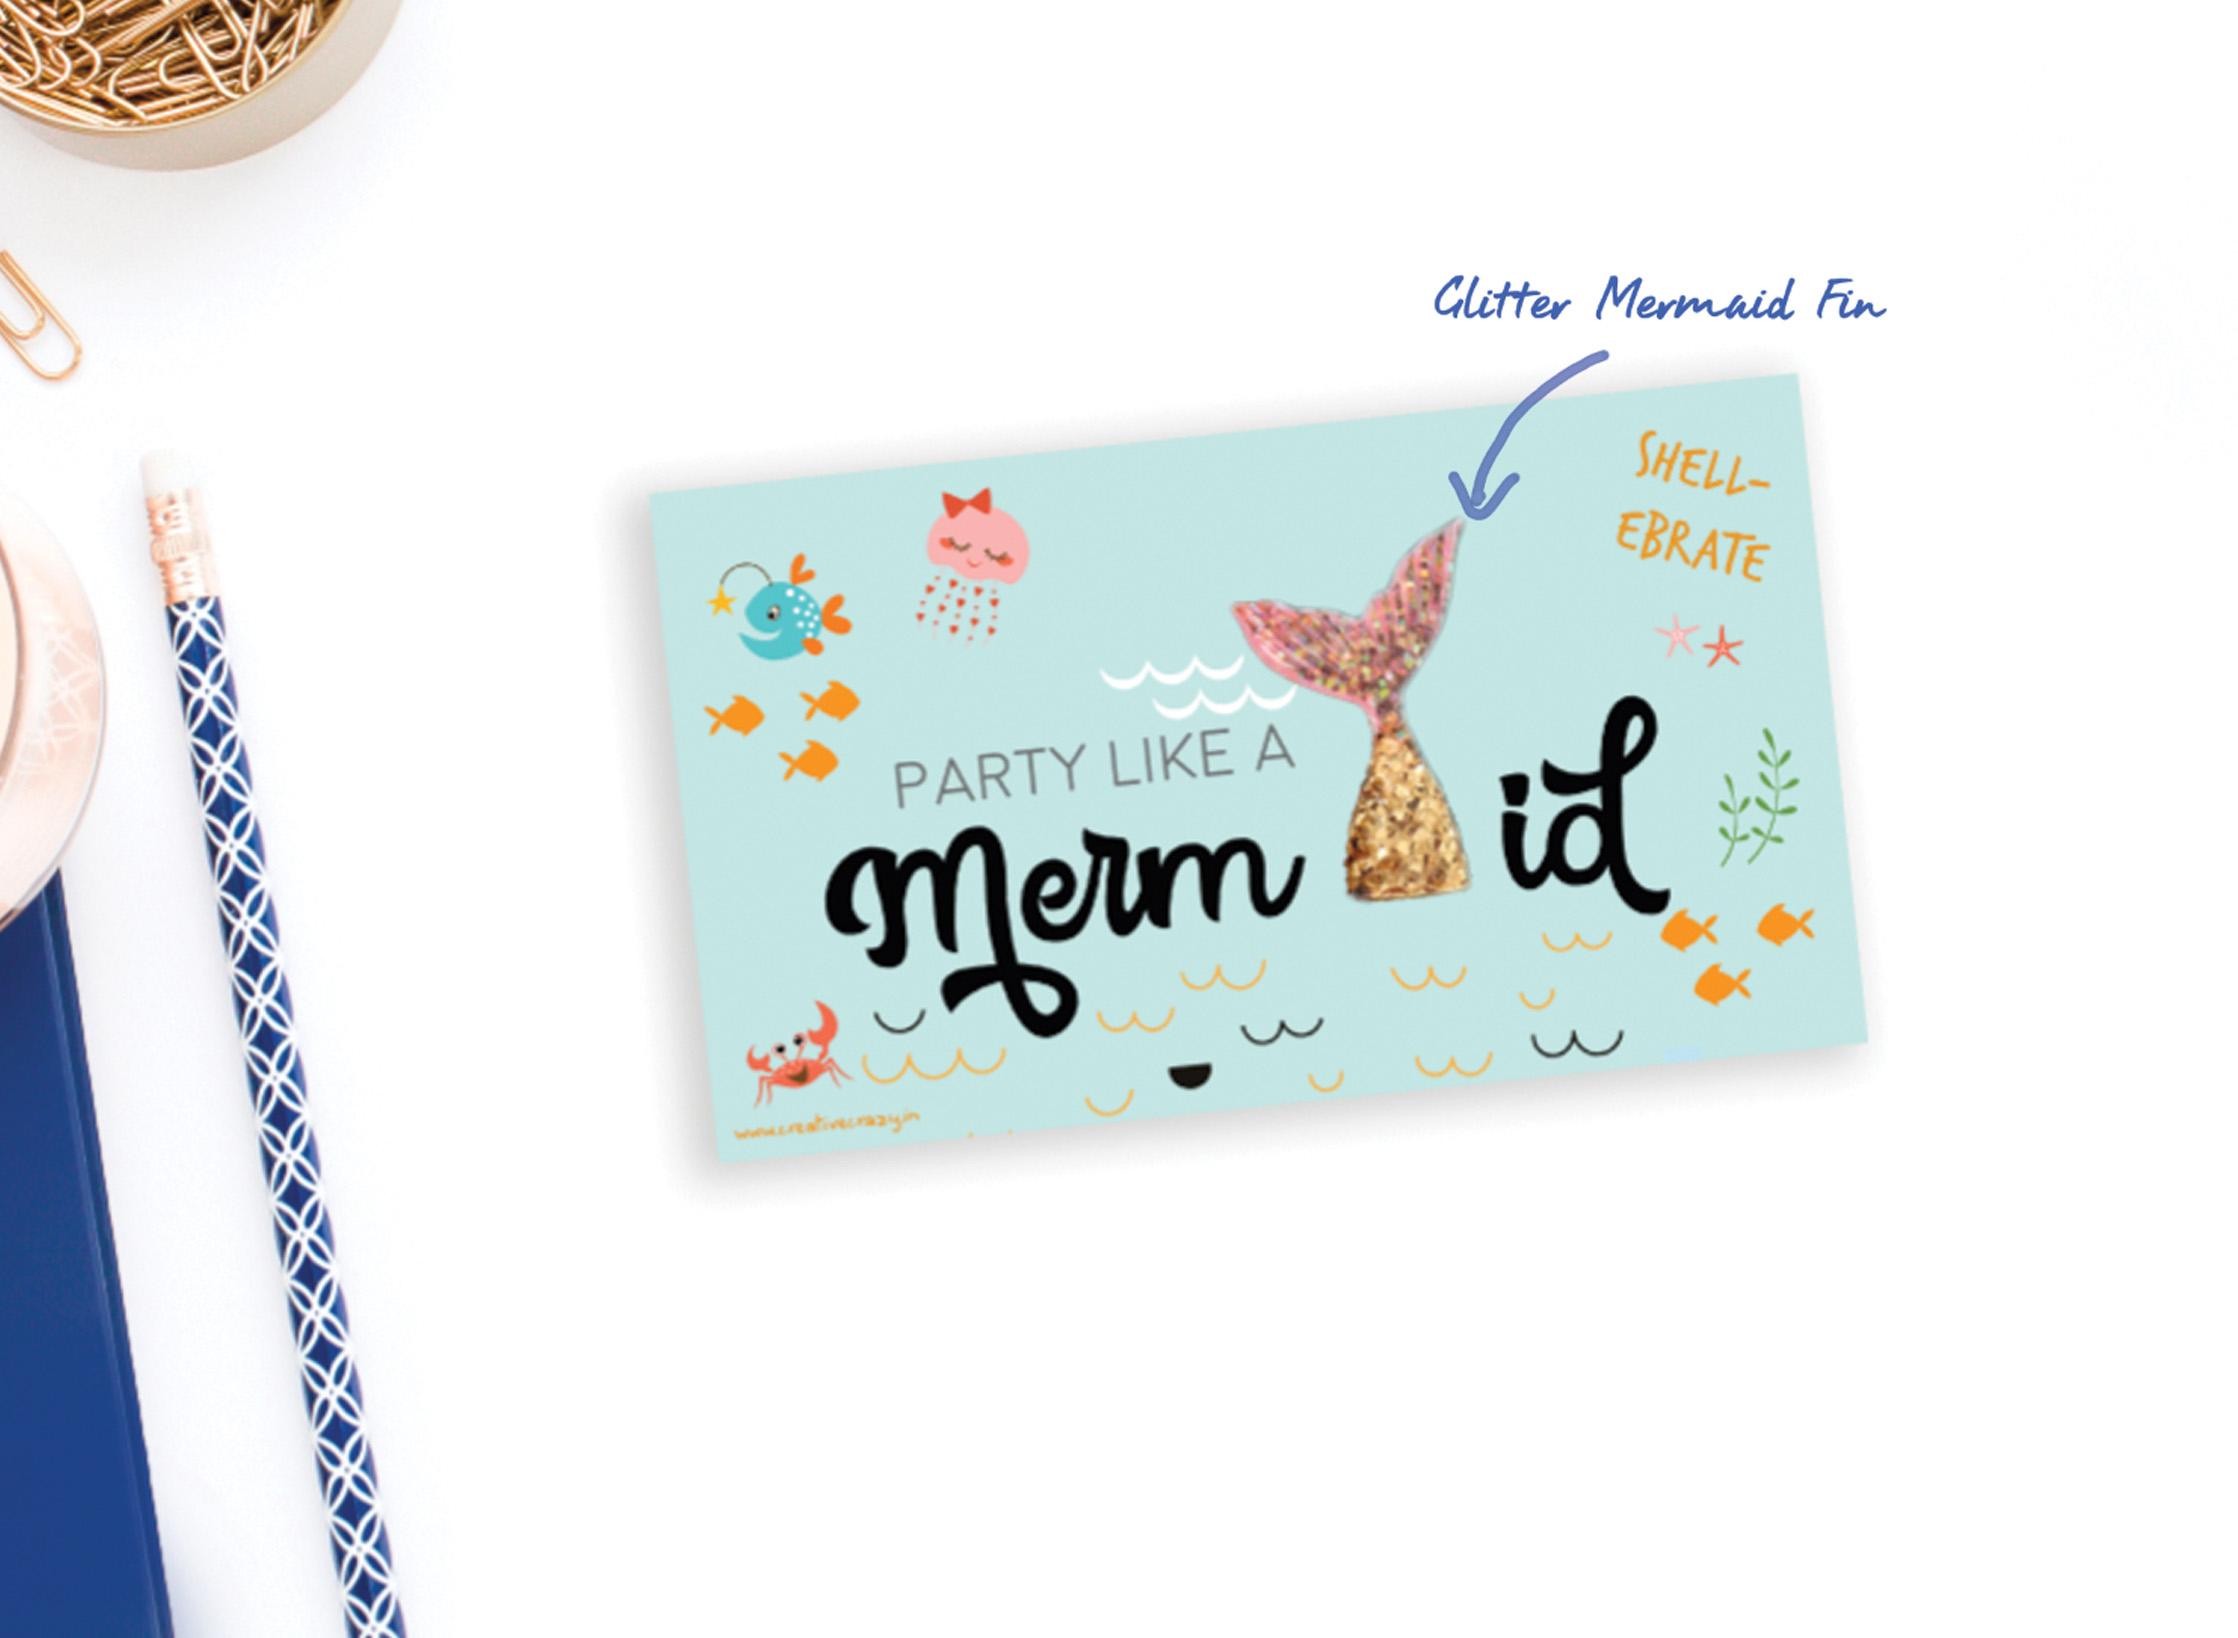 "Mermaid POP UP CARDS  Set of: 6 cards.  280 GSM TEXTURED PAPER  Size: 4"" (w) x 5.5""(h) Flat cards - blank at the back   ₹ 450/-    BUY NOW"